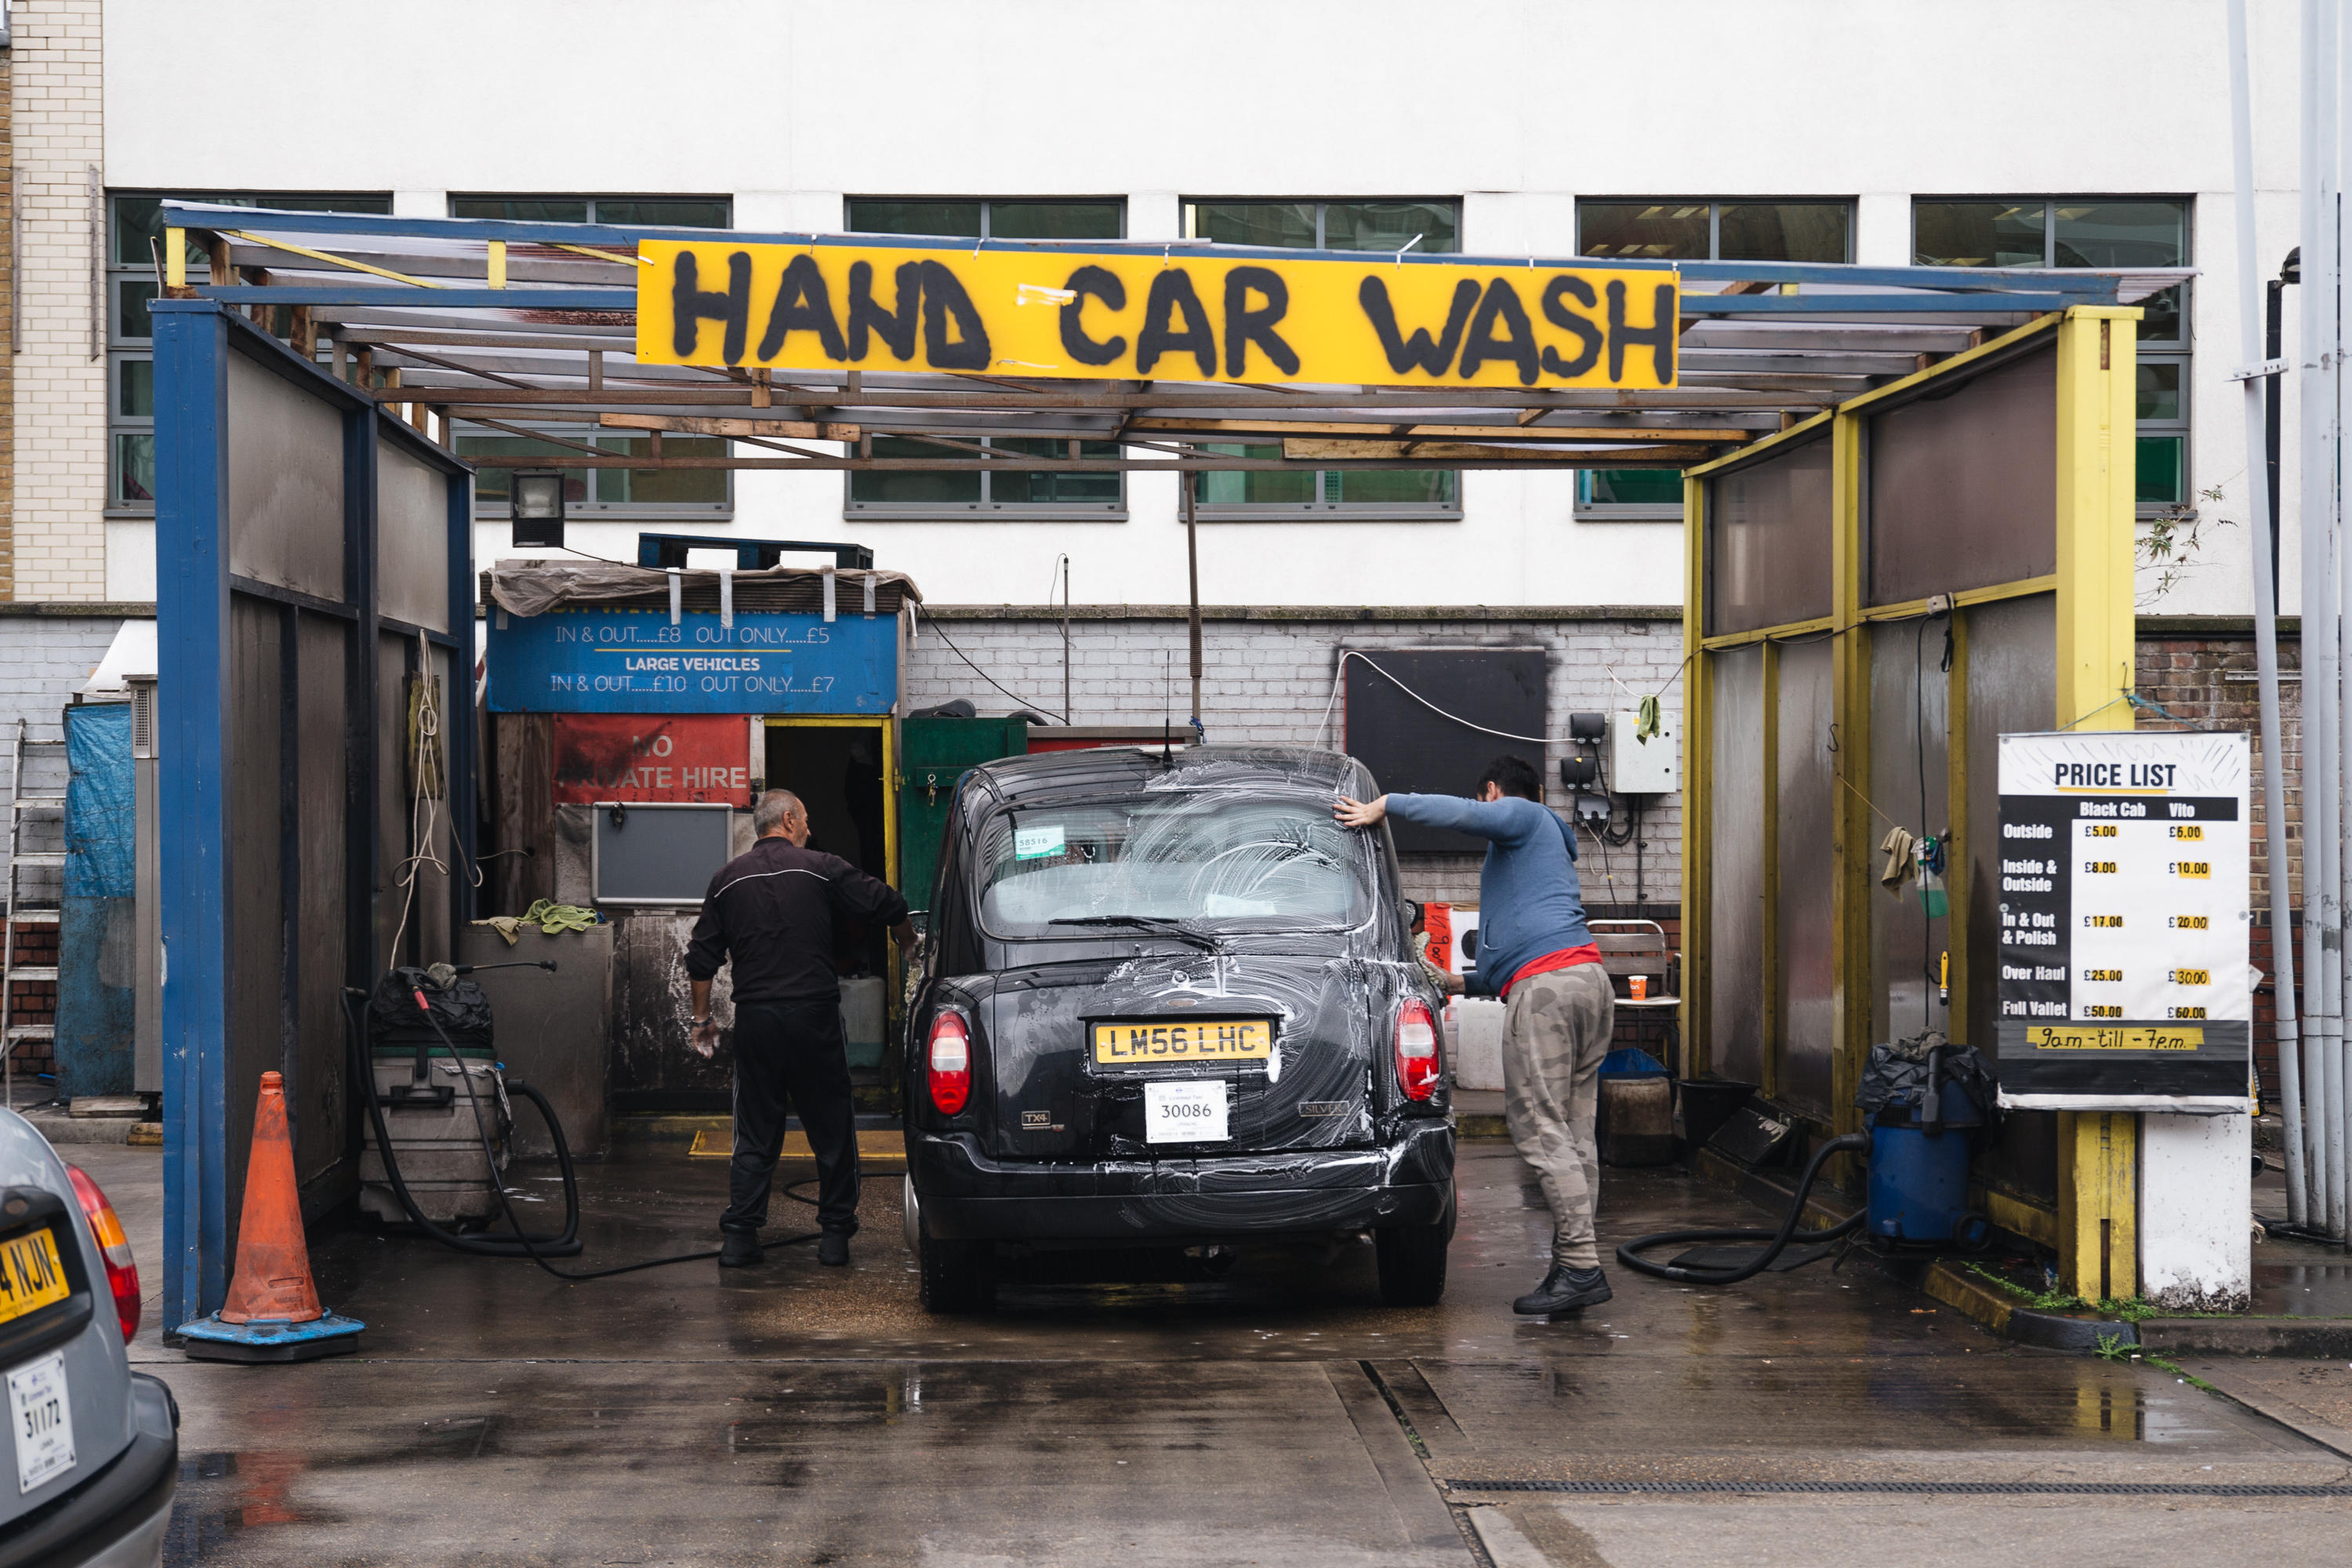 This car wash was in almost constant use during the few hours we spent at the Southwark taxi station. Prices range from £5 for an outside wash, to £50 for a full inside and outside clean.